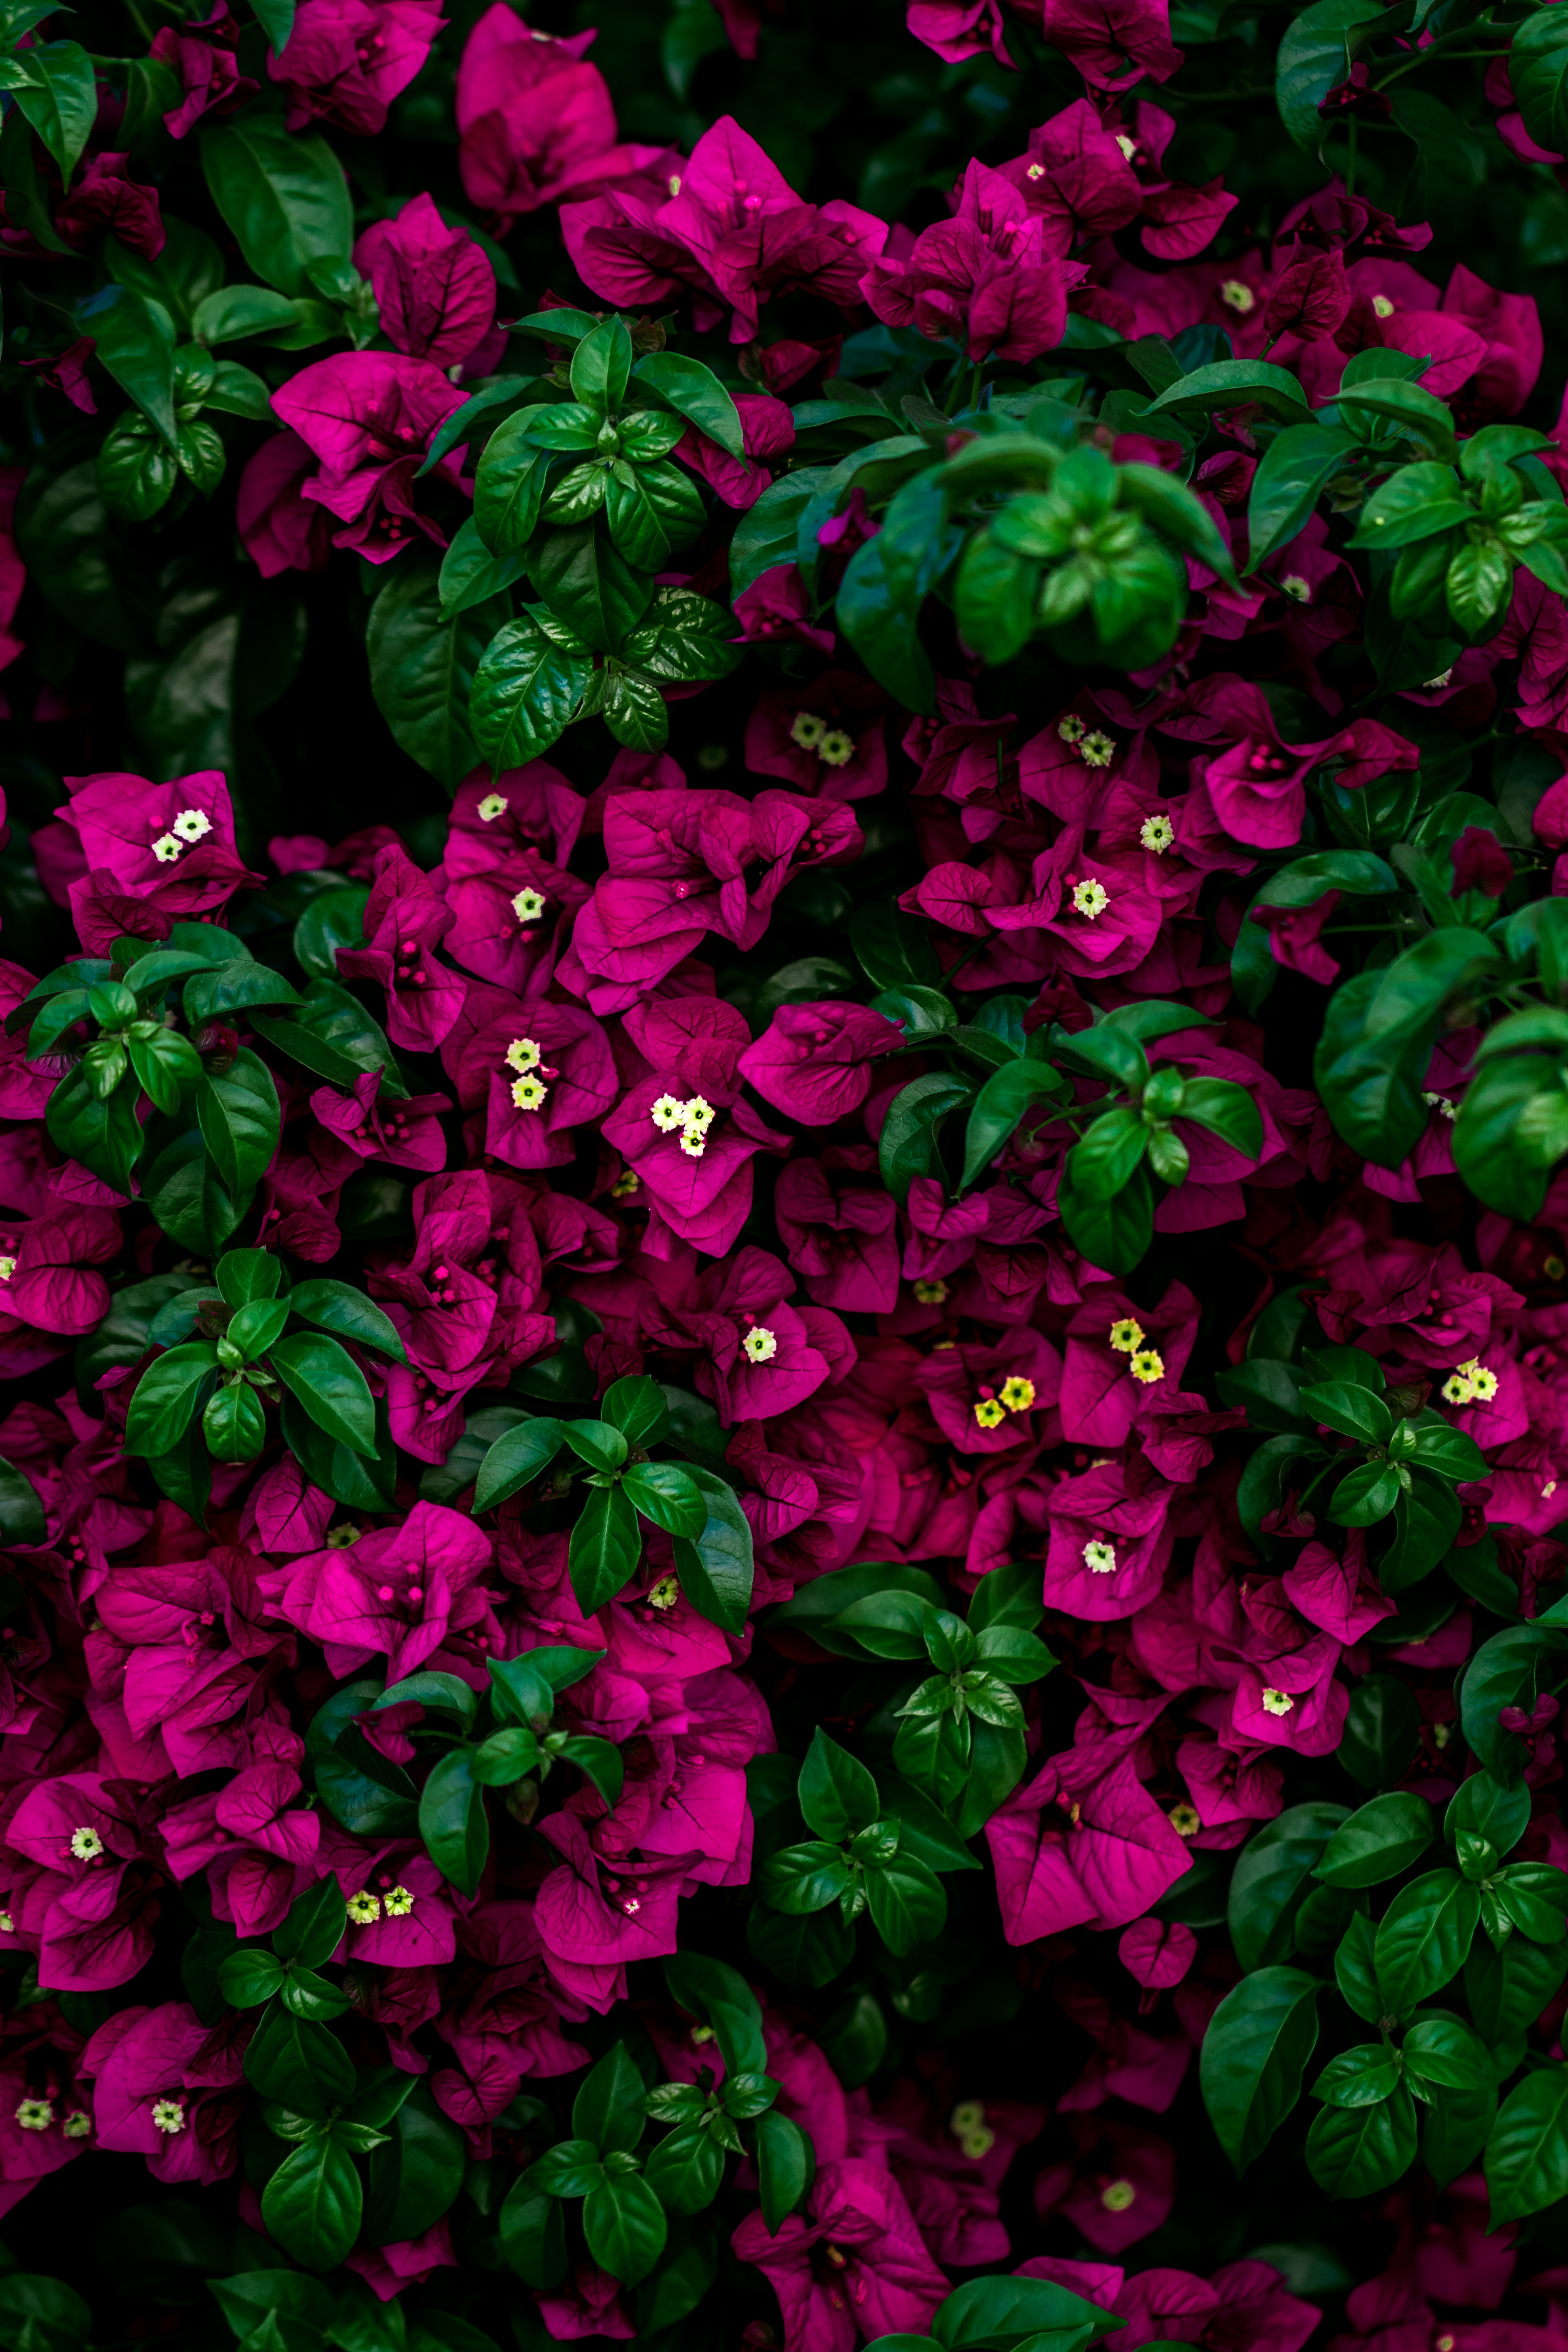 focus photo of pink flowers